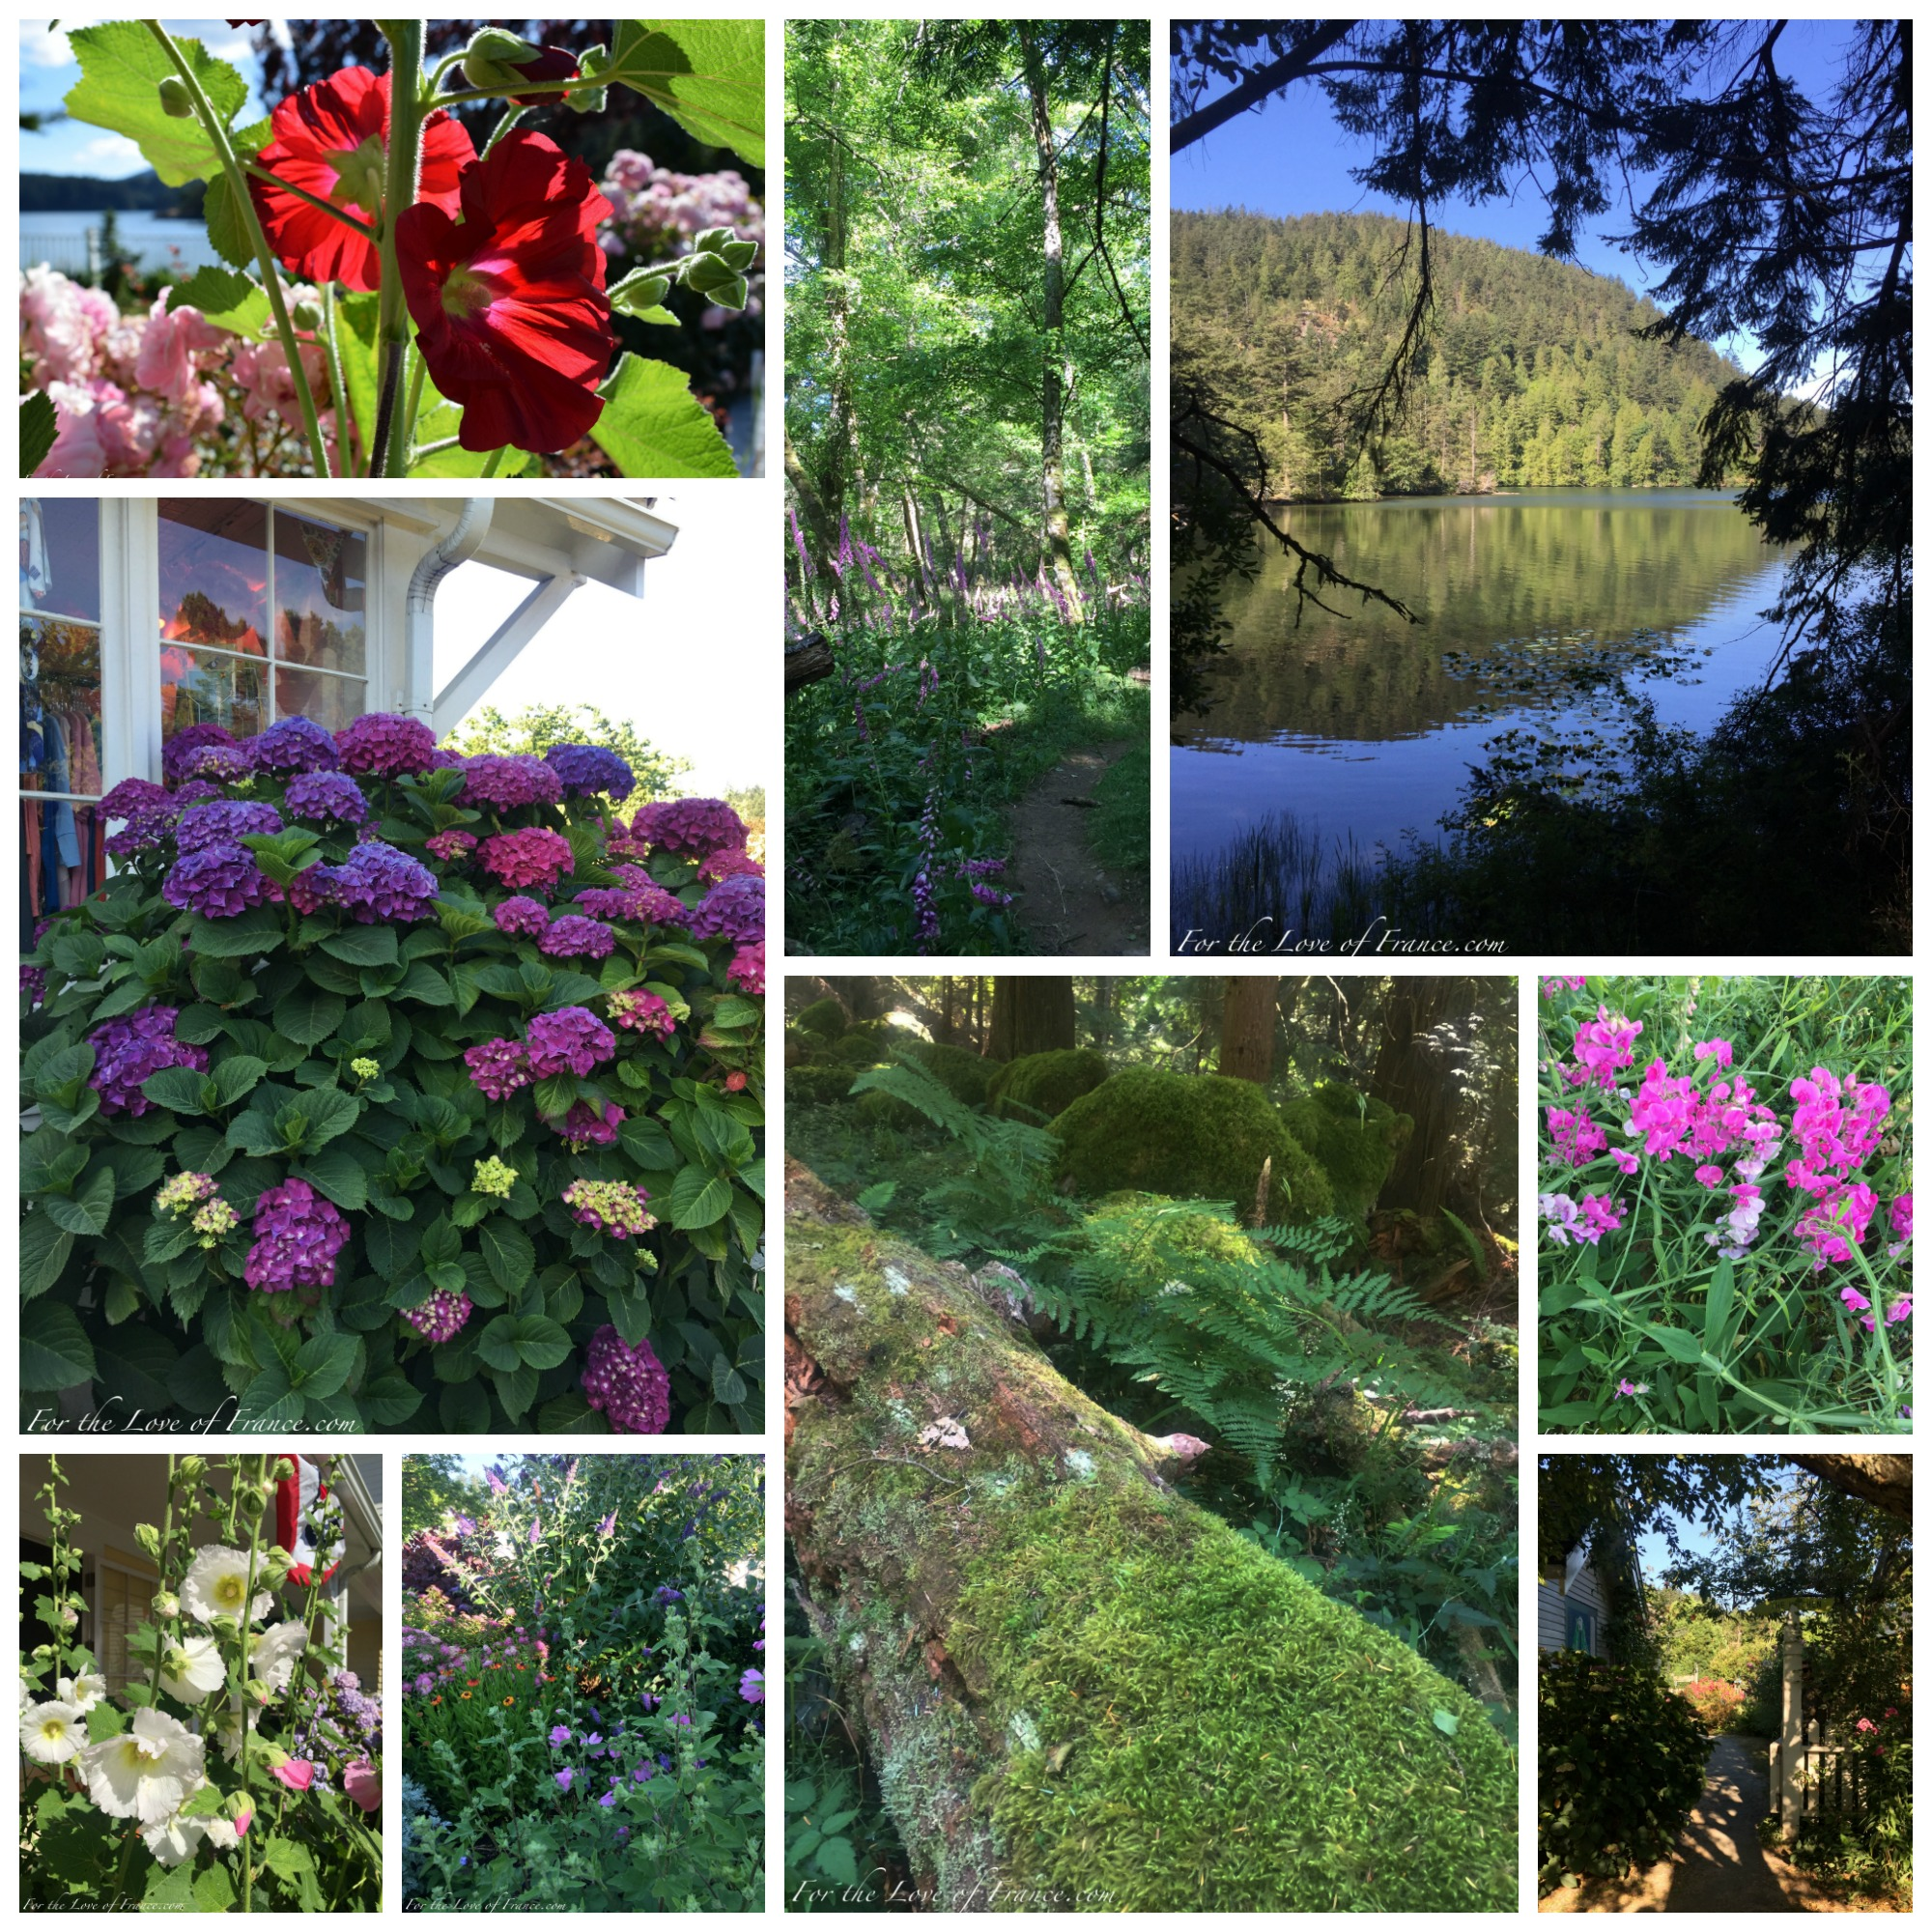 Flowers, Moran State Forest and Cascade Lake, Orcas Island WA